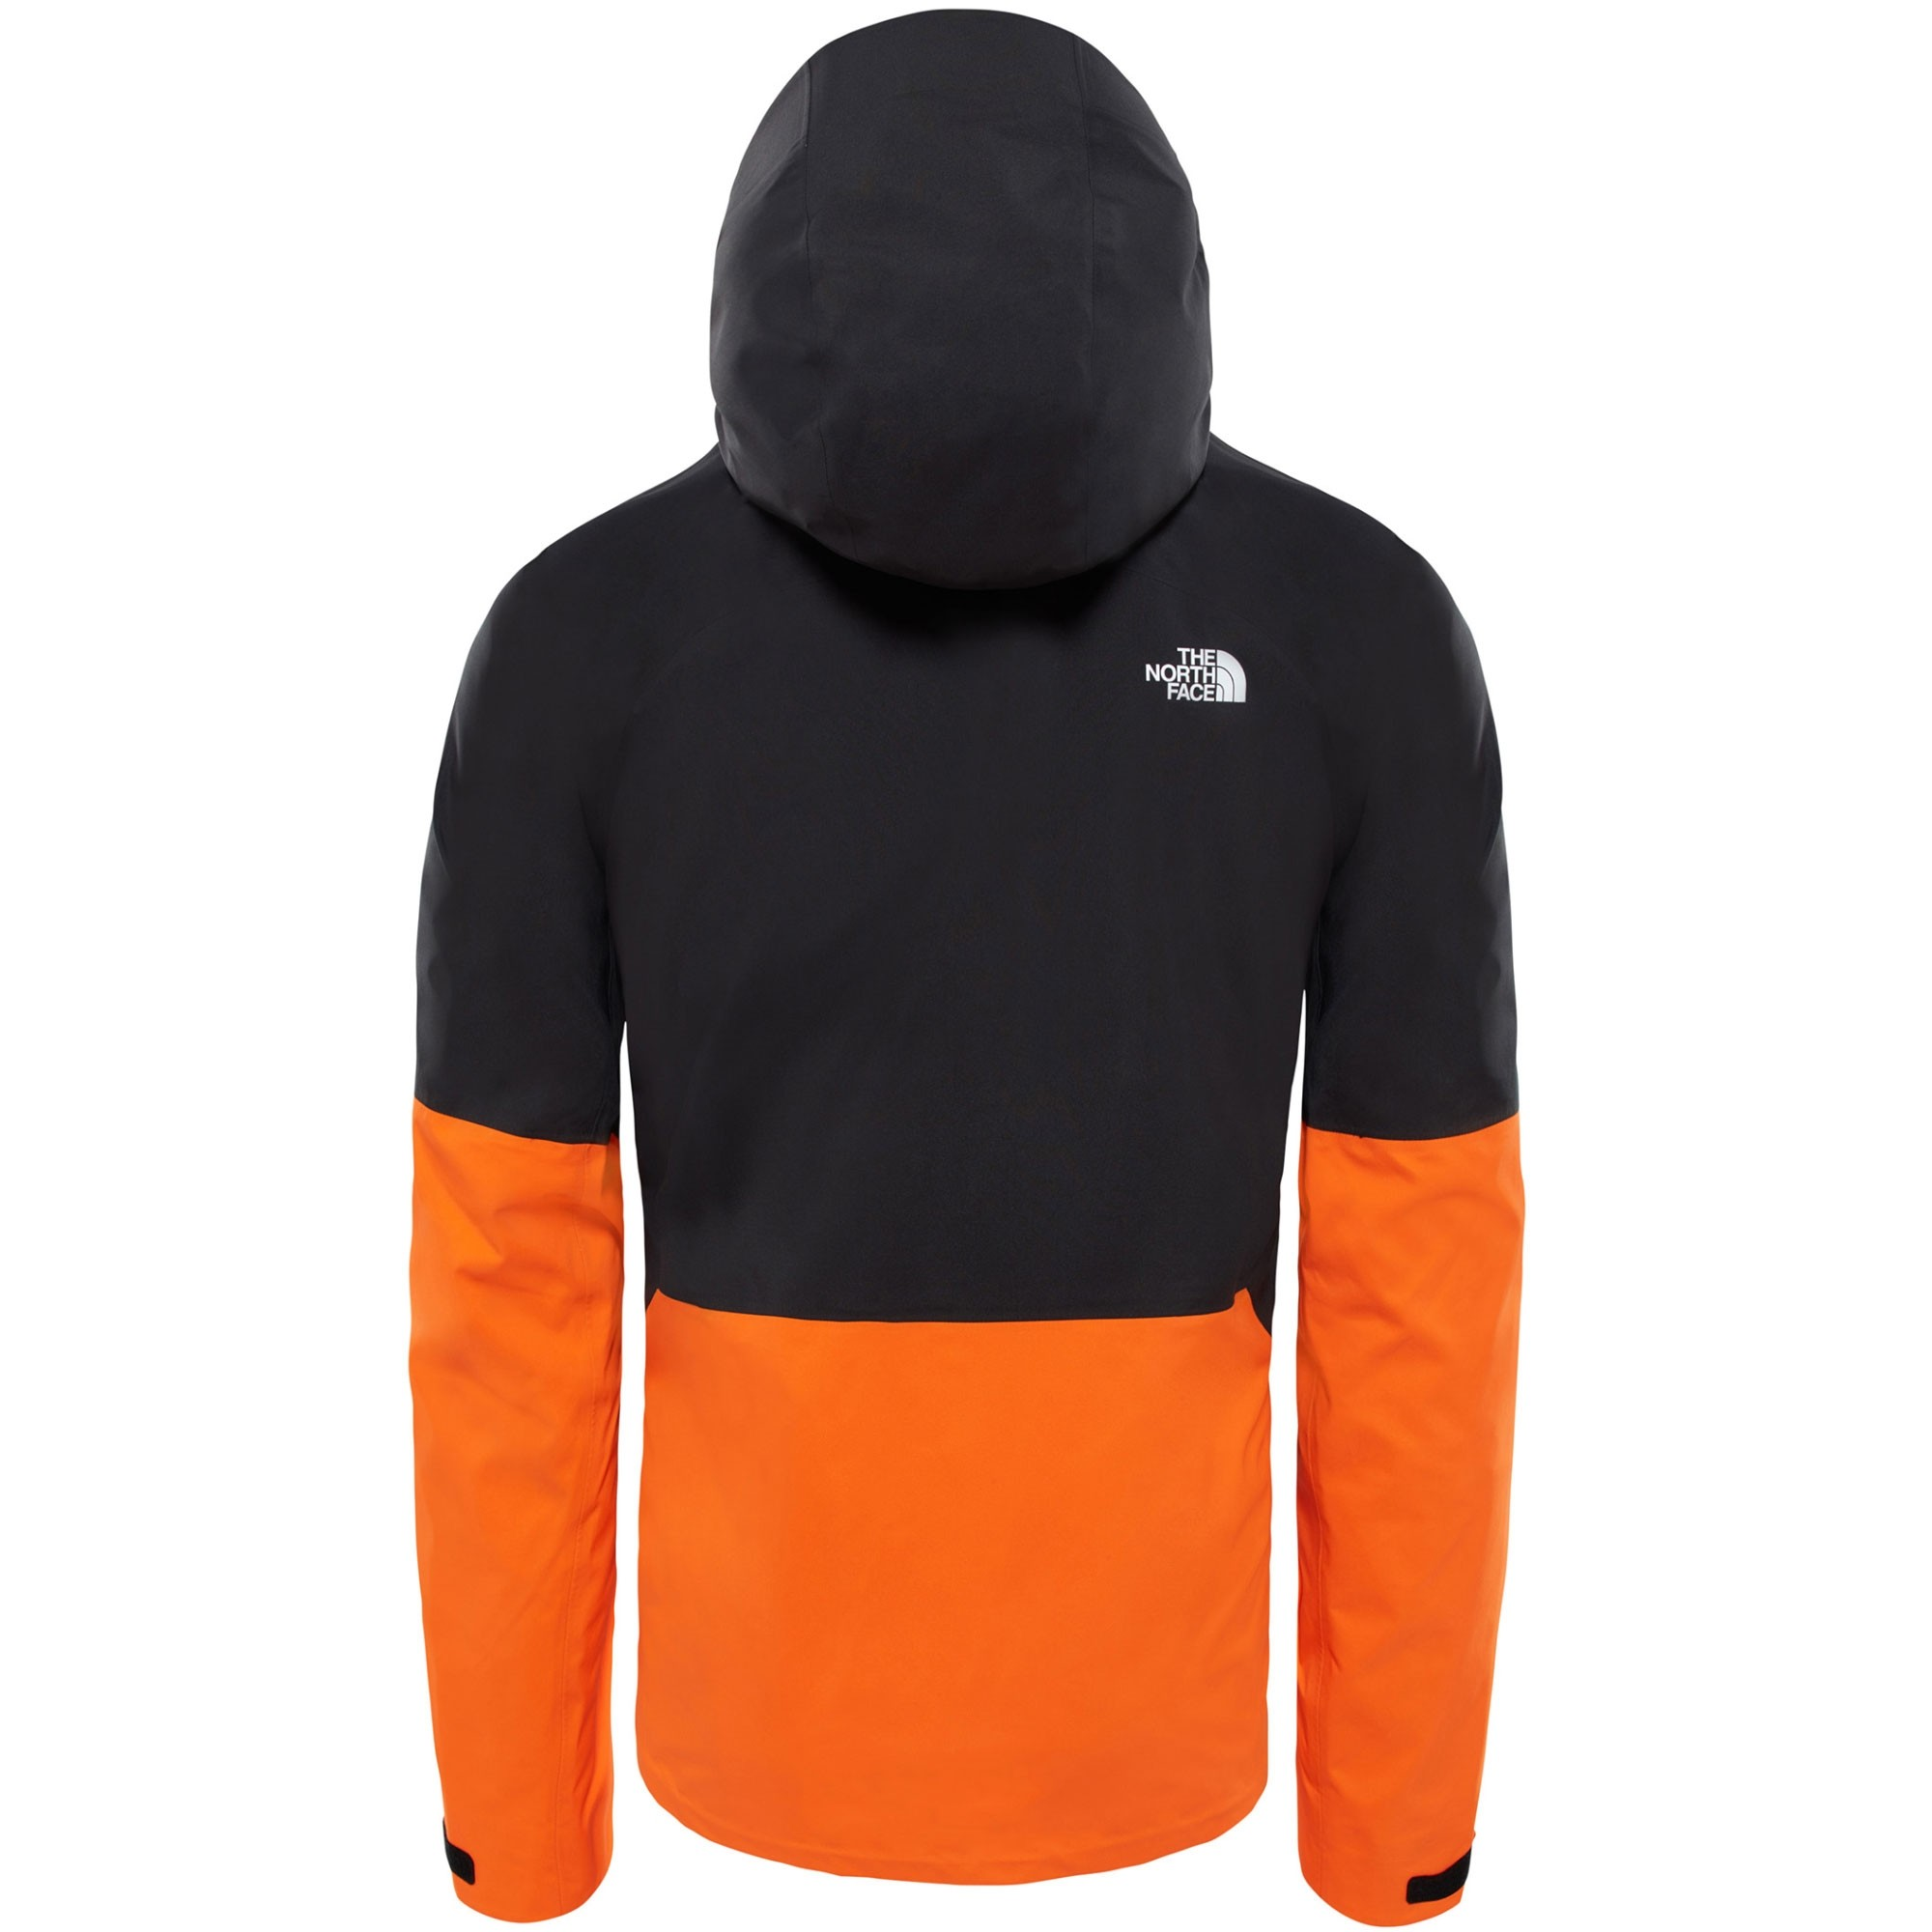 The North Face Impendor Shell Jacket - Persian Orange/TNF Black - rear